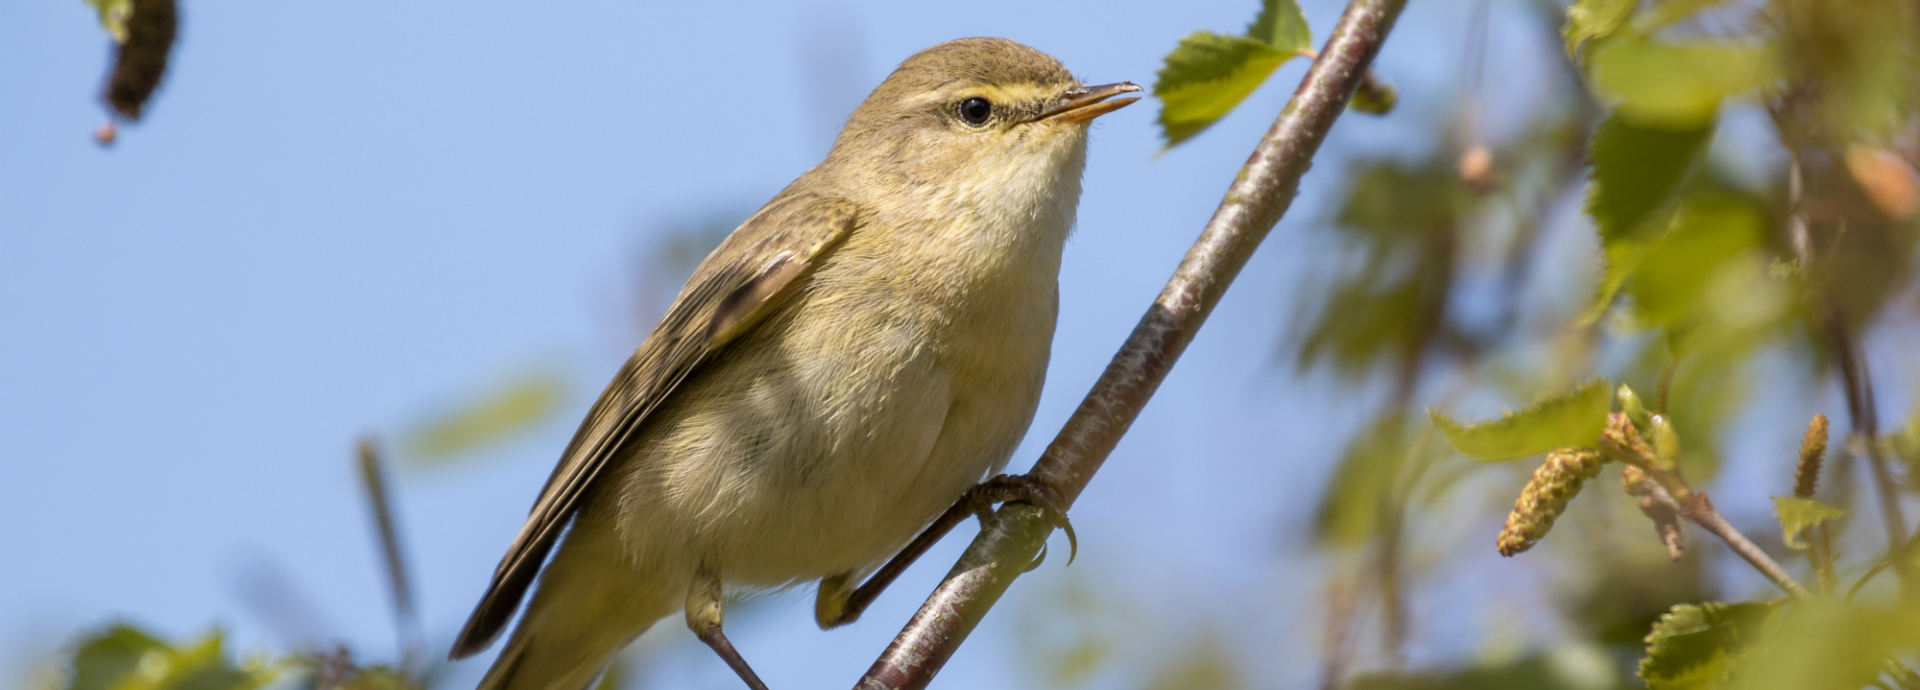 Willow warbler sitting in a tree.